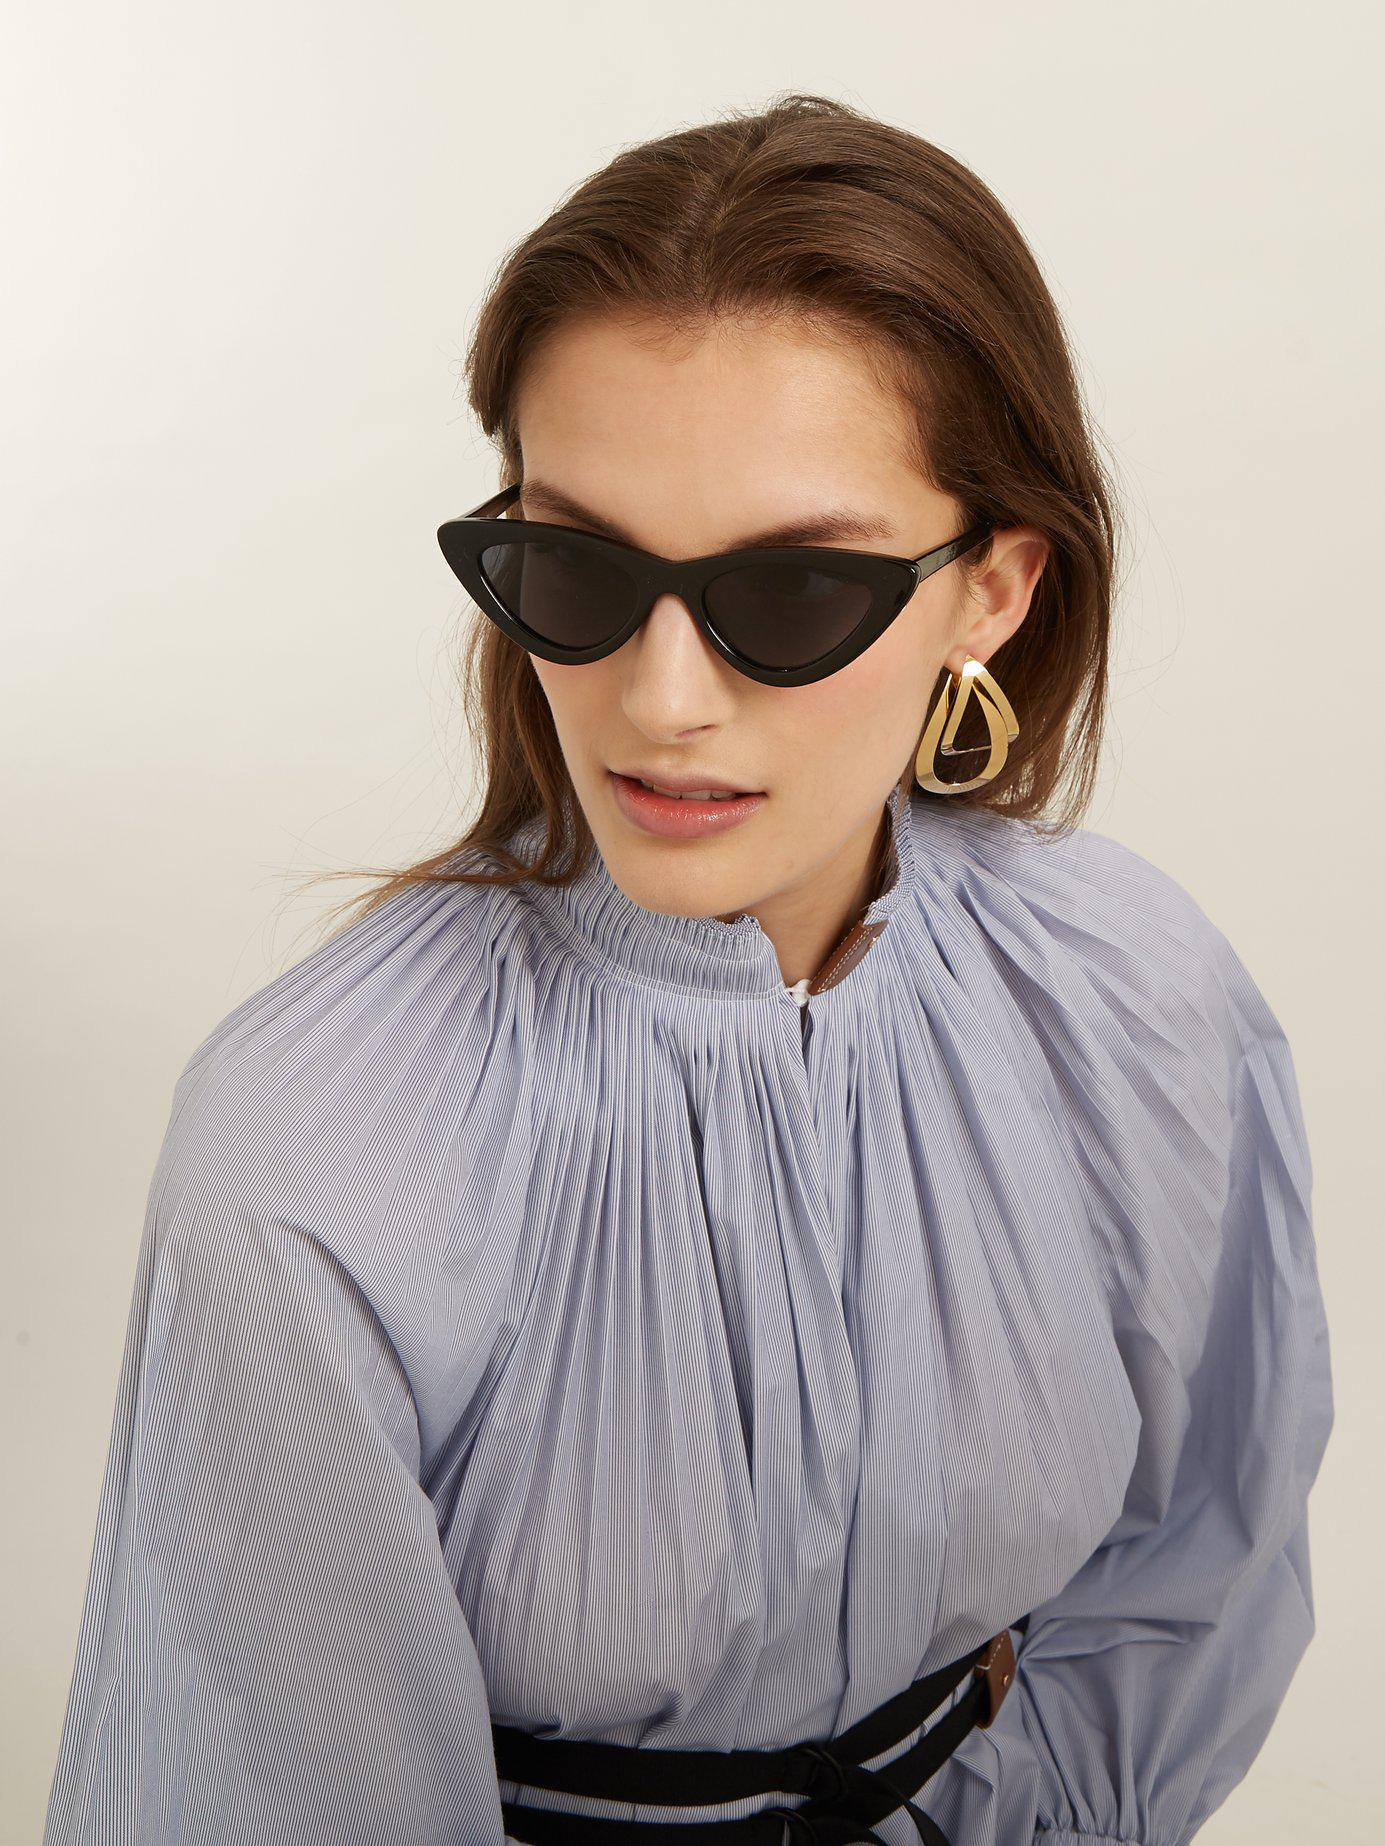 Lyst - Le Specs The Last Lolita Faux Pearl-embellished Cat-eye Acetate  Sunglasses in Black - Save 46% 89cf2b646556e